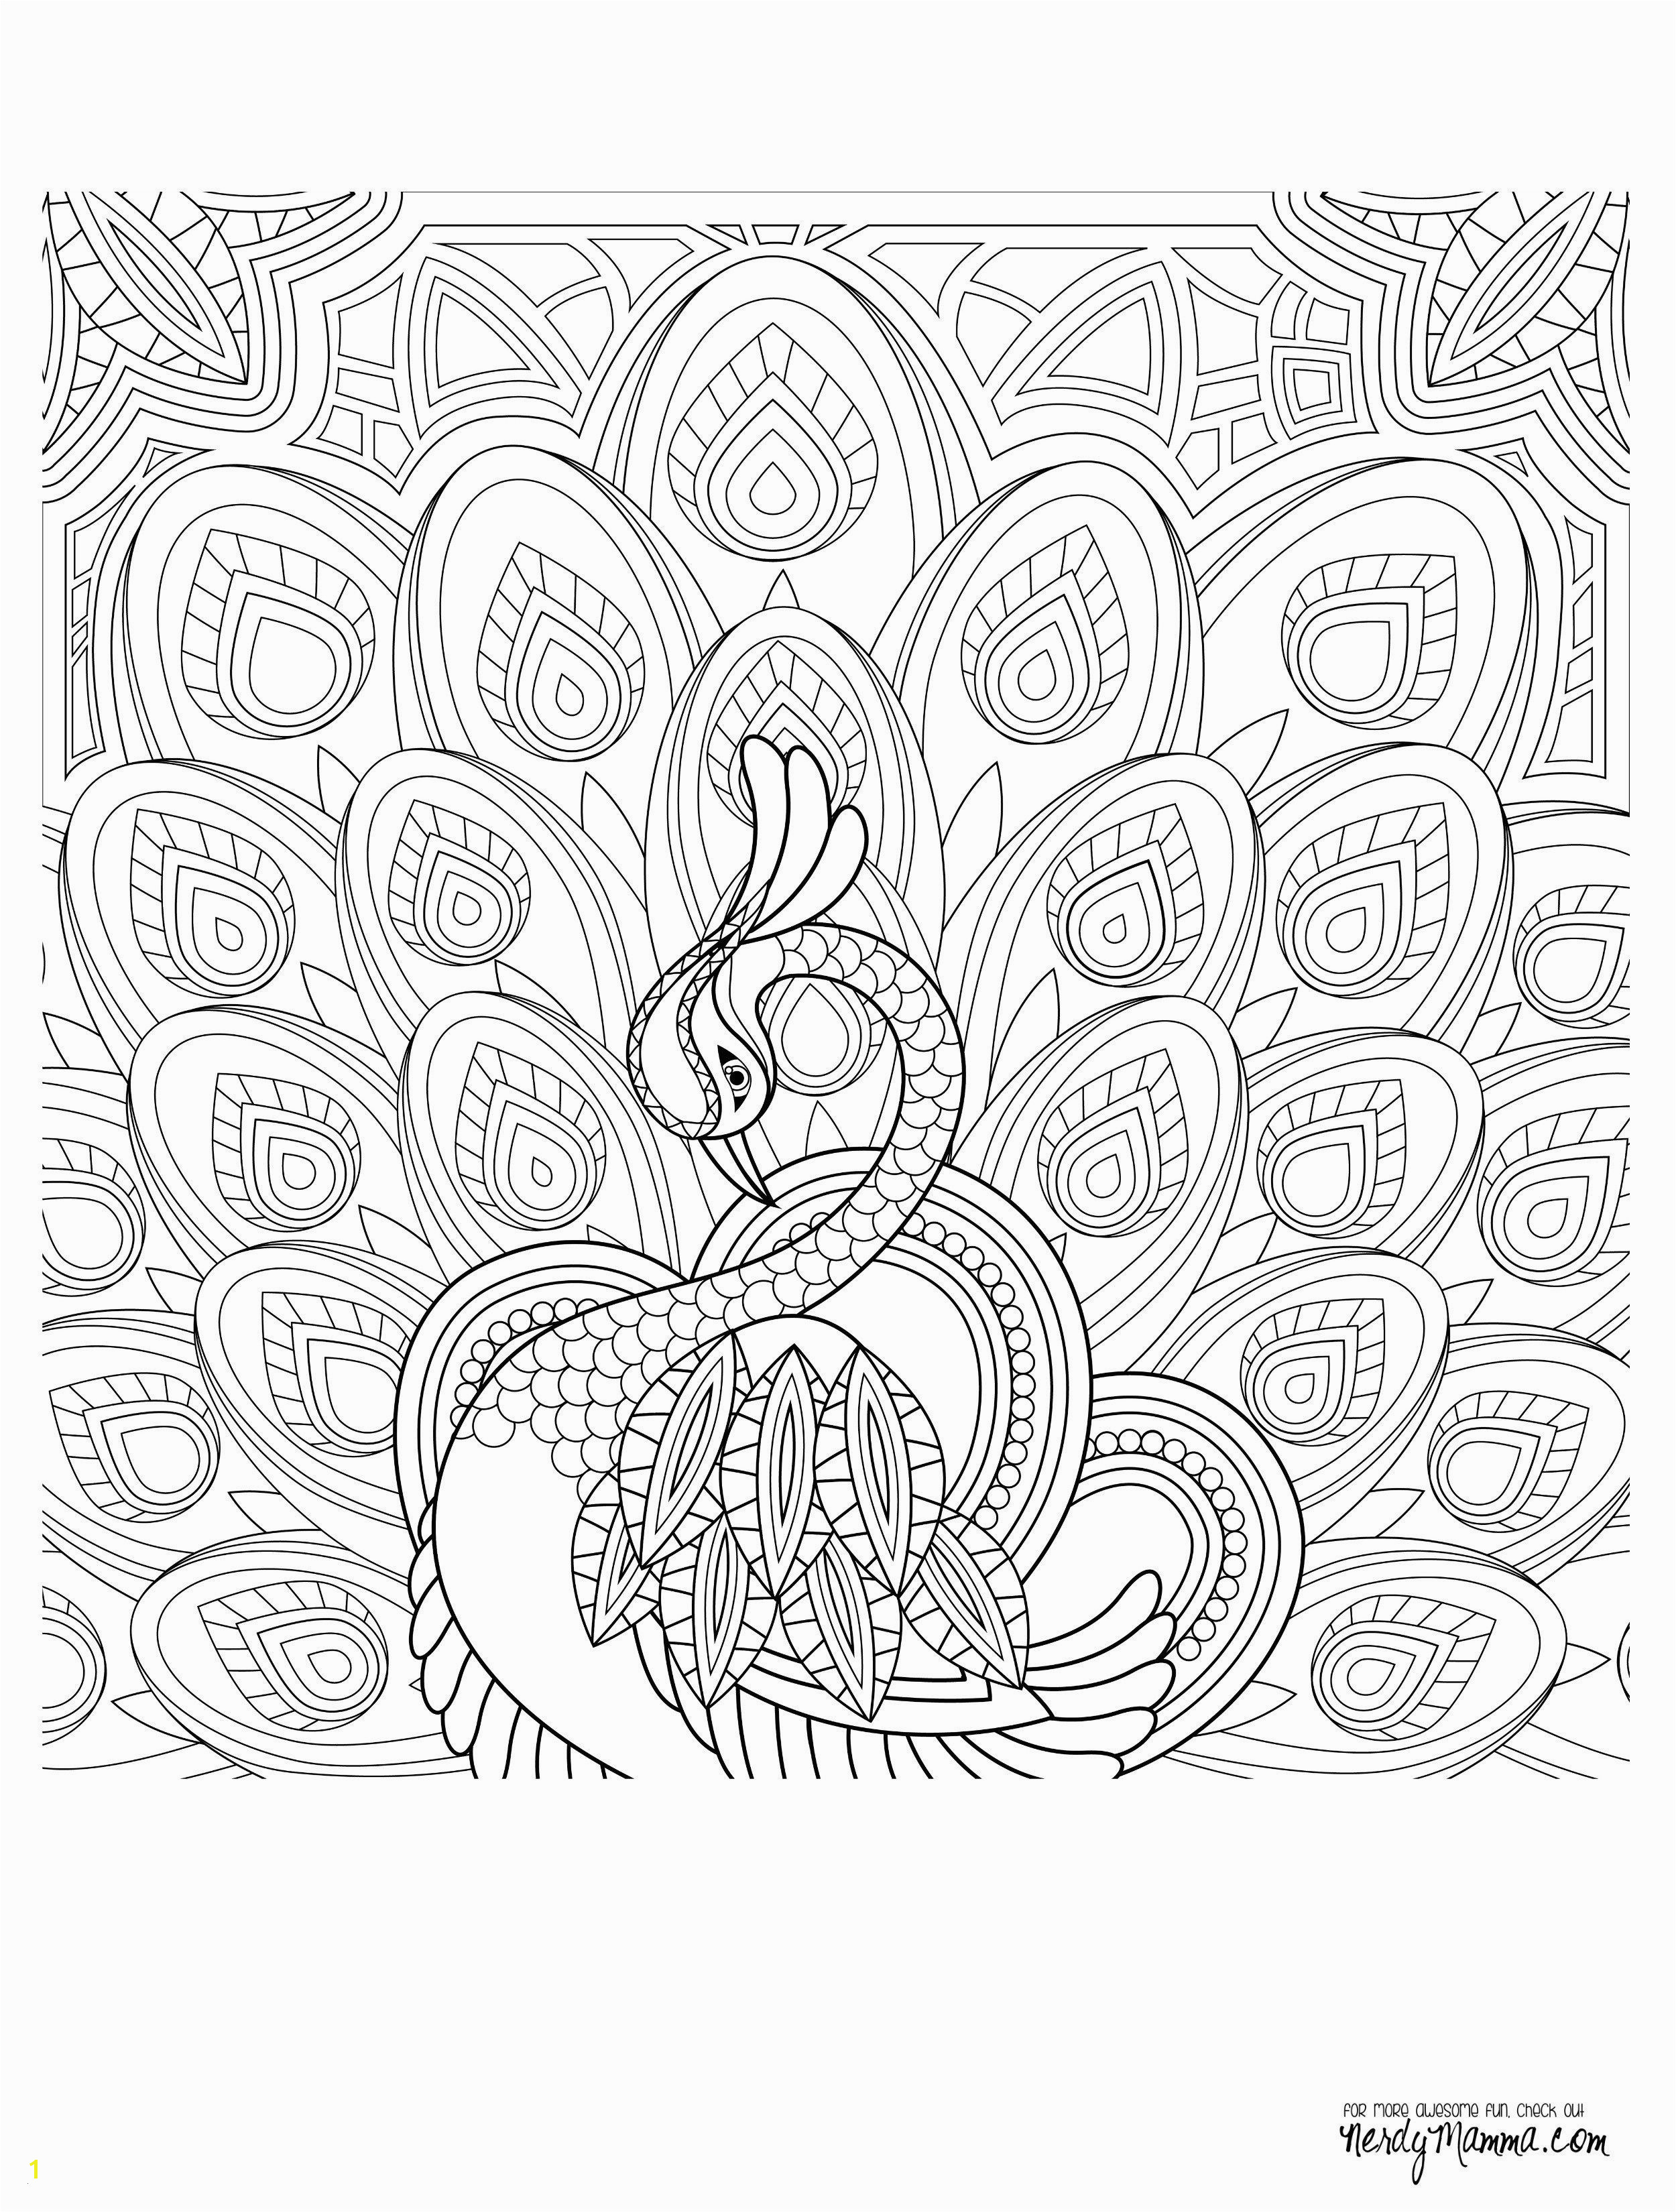 Elf Coloring Pages Elves Coloring Wonderful Cool Coloring Page Unique Witch Coloring Pages New Crayola